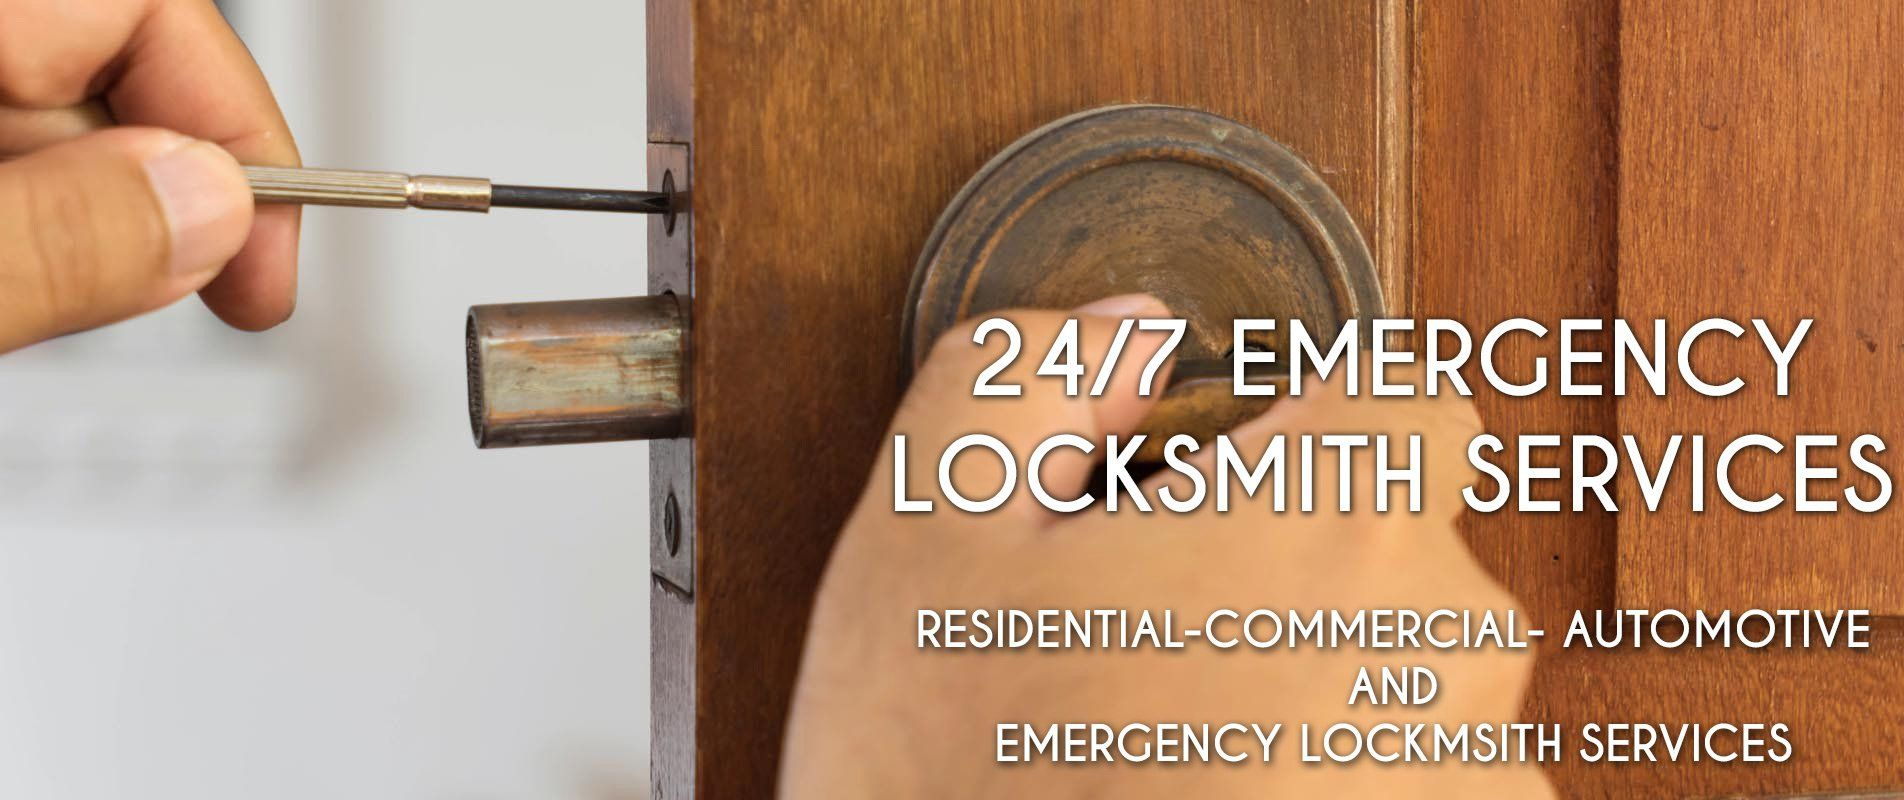 LOCKSMITH Gaithersburg, MD